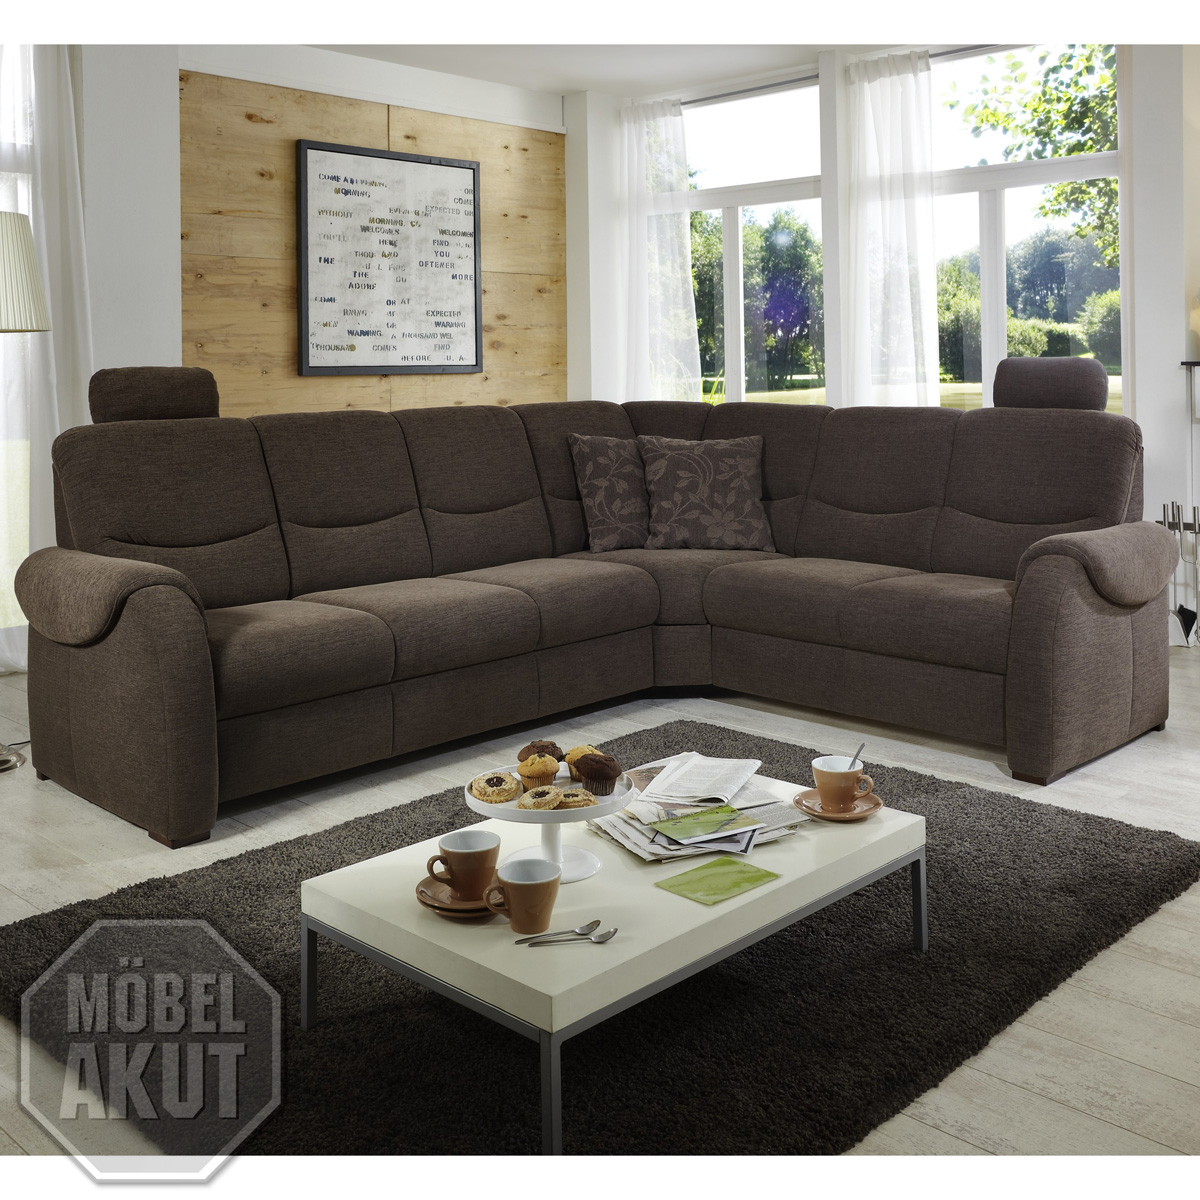 boxspring couch mit bettfunktion boxspring couch mit. Black Bedroom Furniture Sets. Home Design Ideas